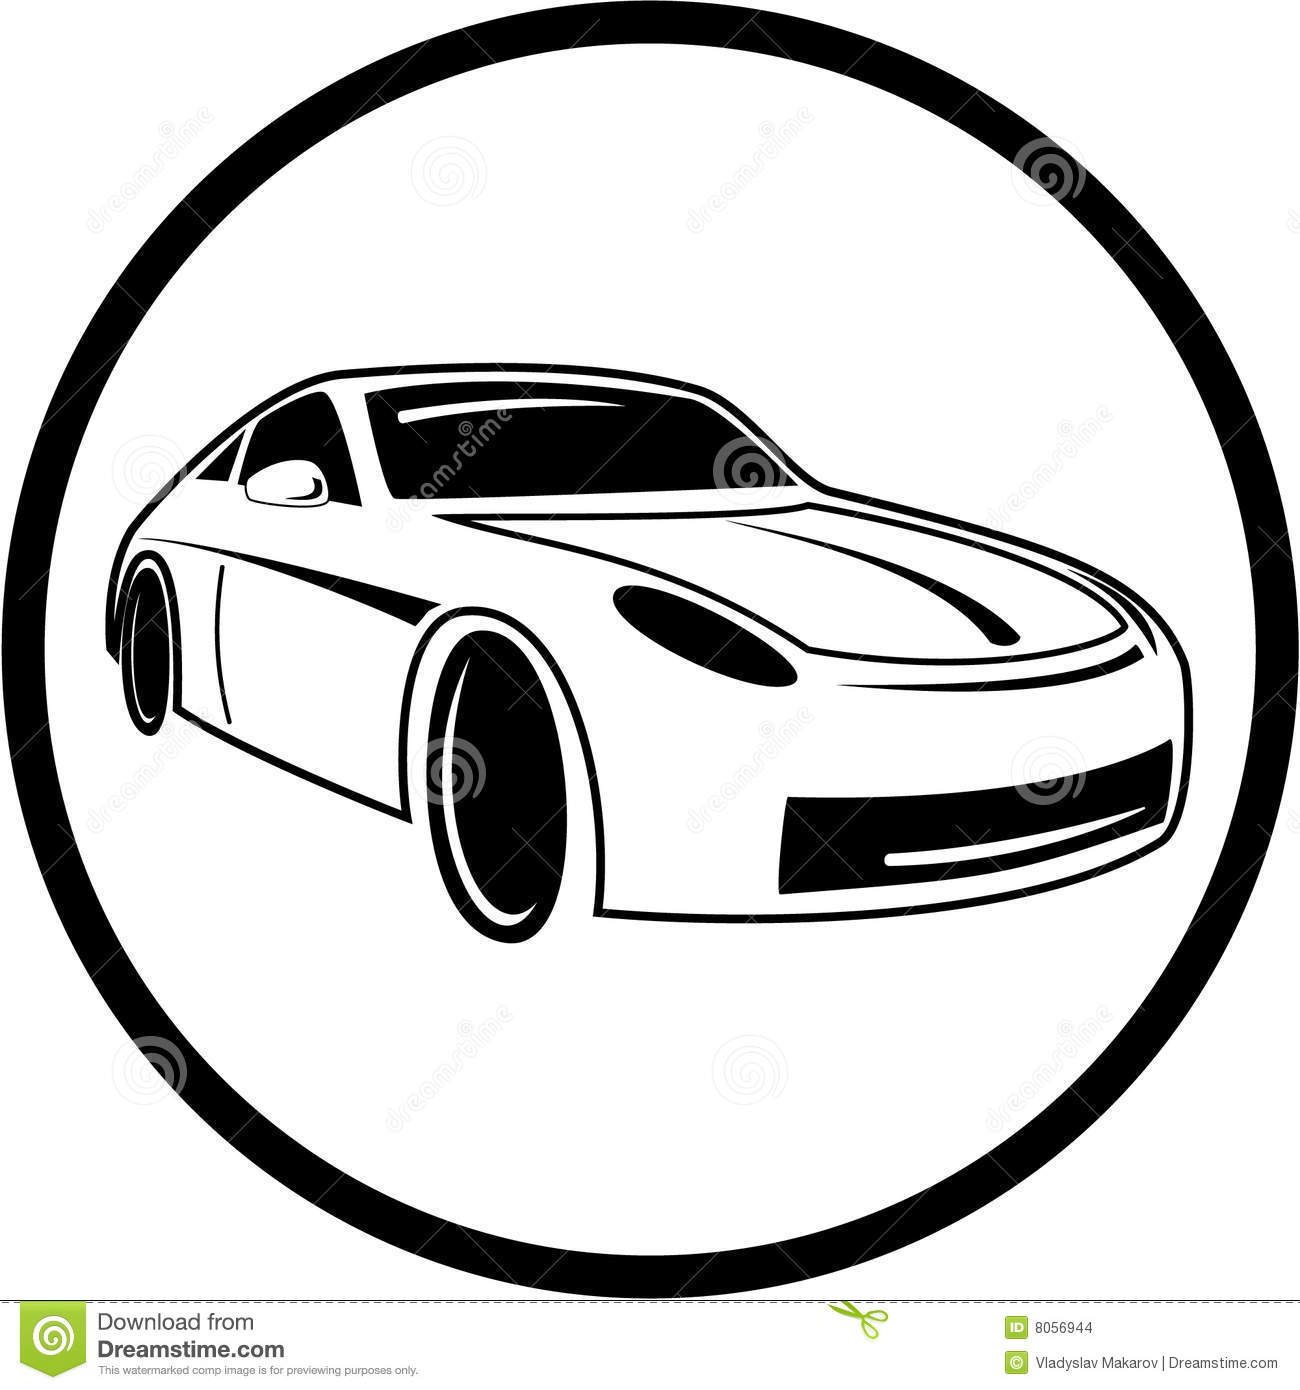 Vector Car Icon Stock Vector. Illustration Of Frame